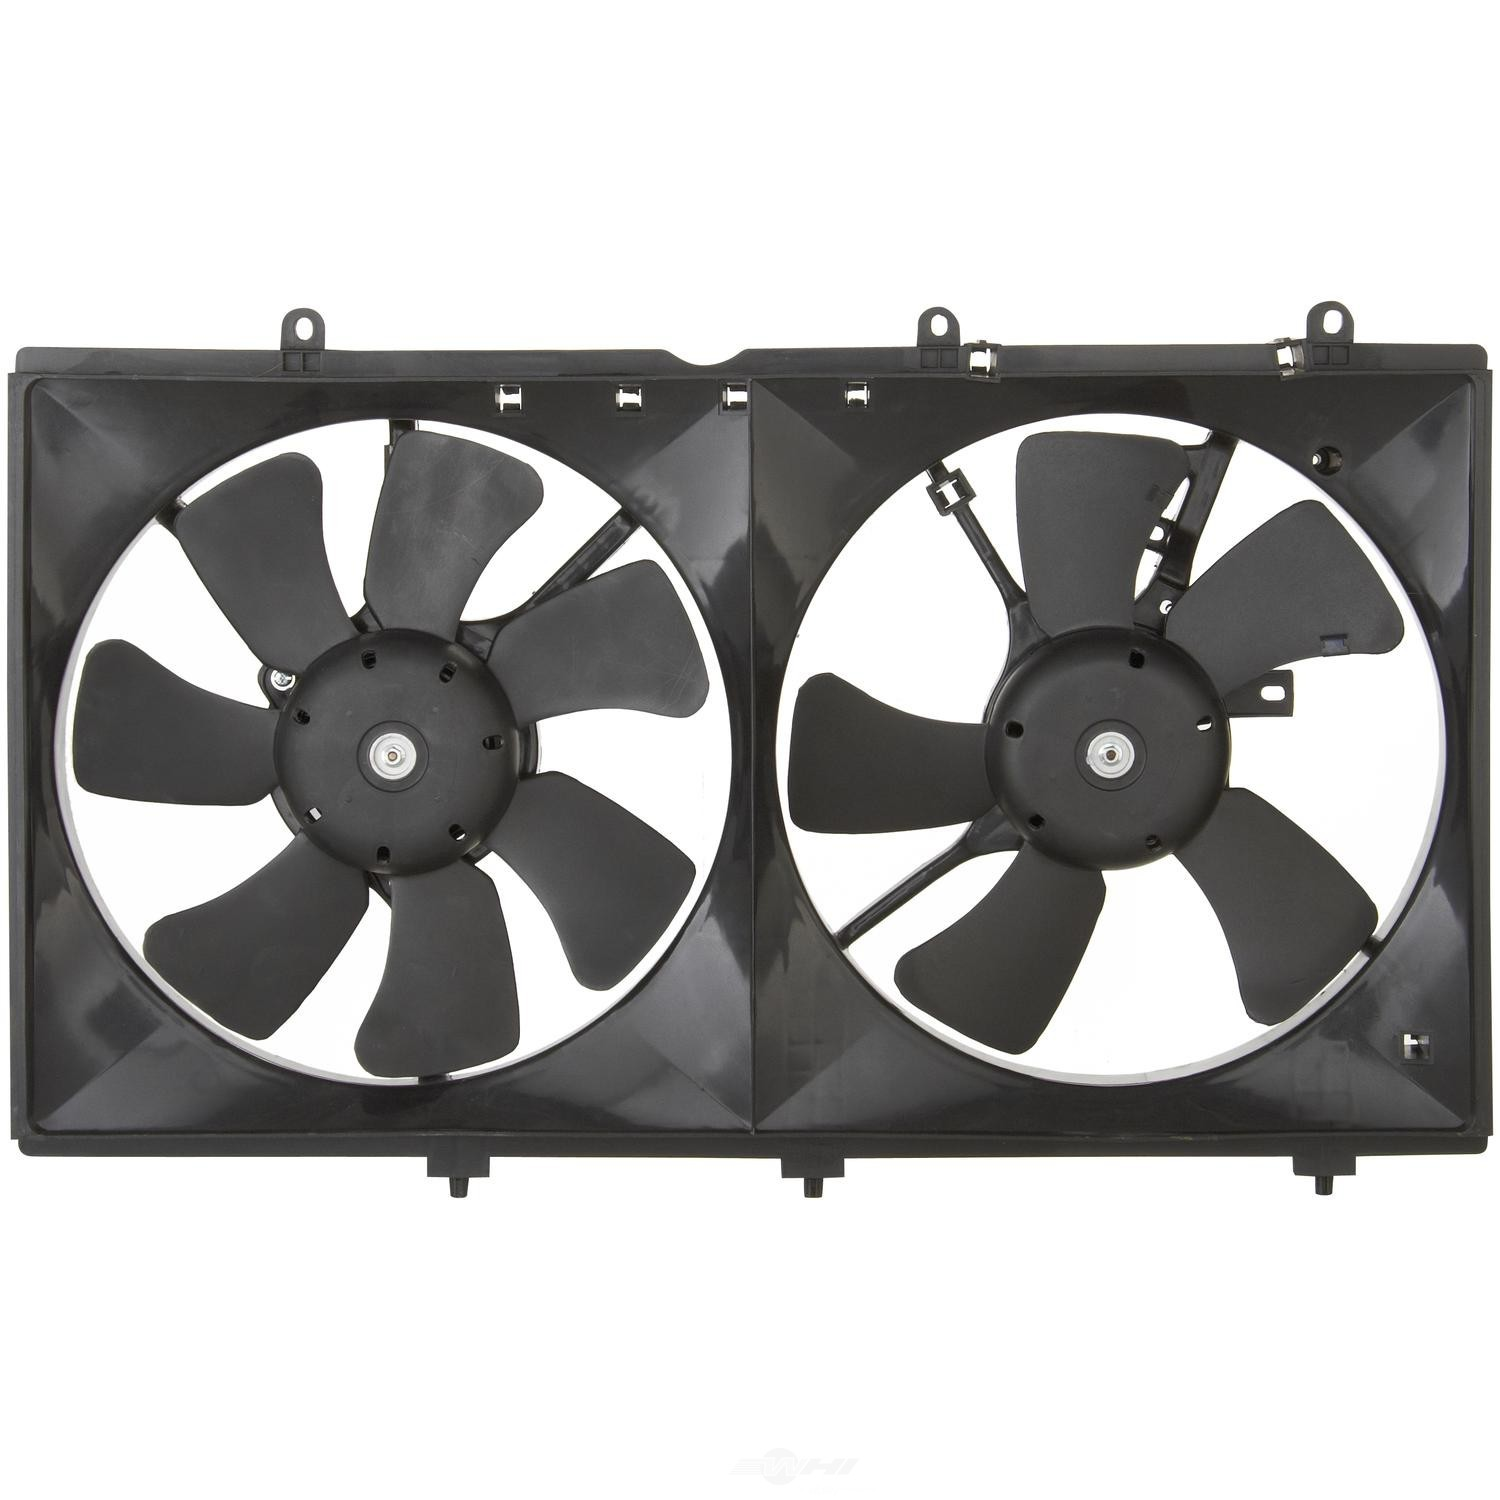 SPECTRA PREMIUM IND, INC. - Dual Radiator and Condenser Fan Assembly - SPC CF22004